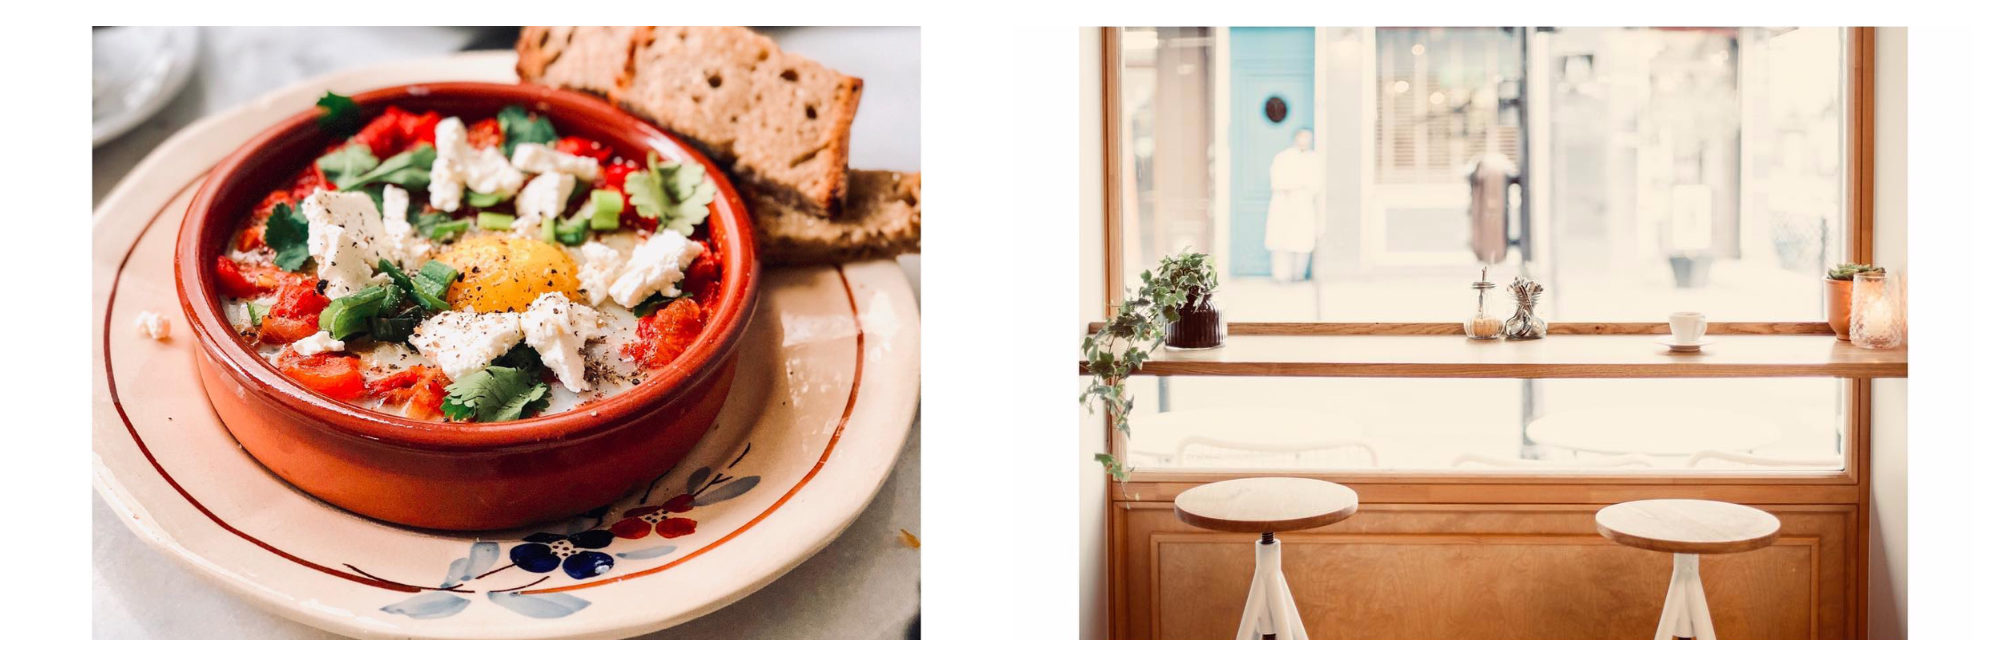 A feta dish in an earthen dish on a hand-painted plate (left) and window seating (right) at Café Pimpim in Montmartre on a Sunday.